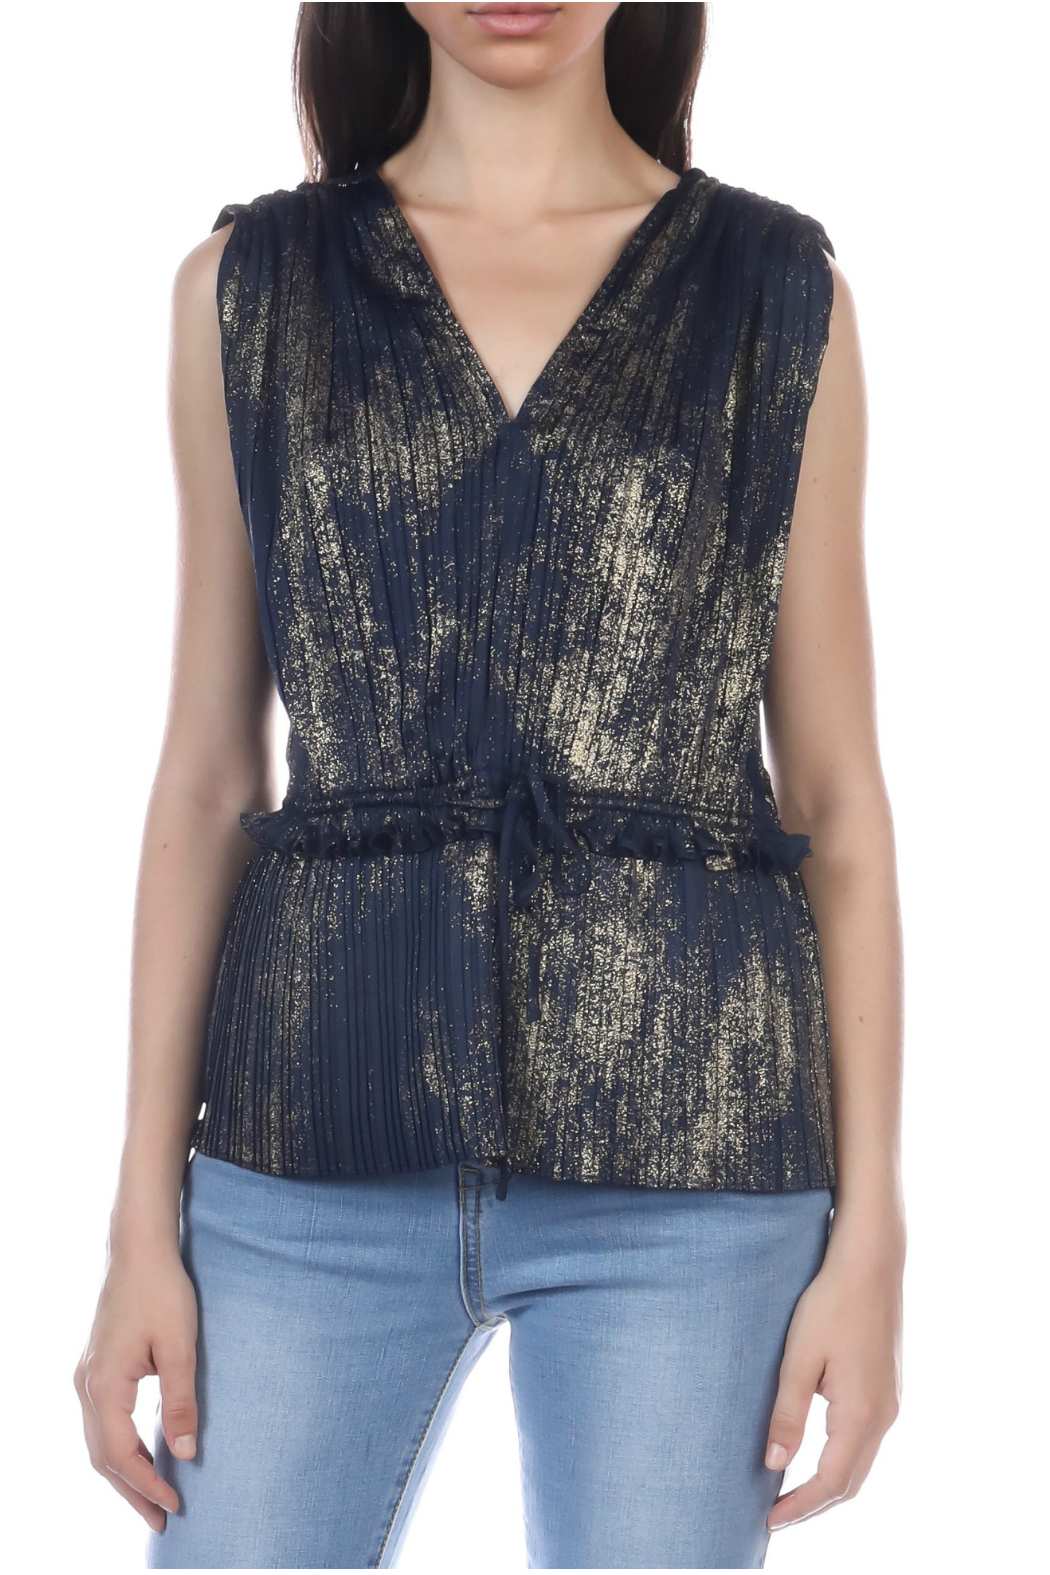 Current Air Gold foil pleated sleeveless top - Main Image